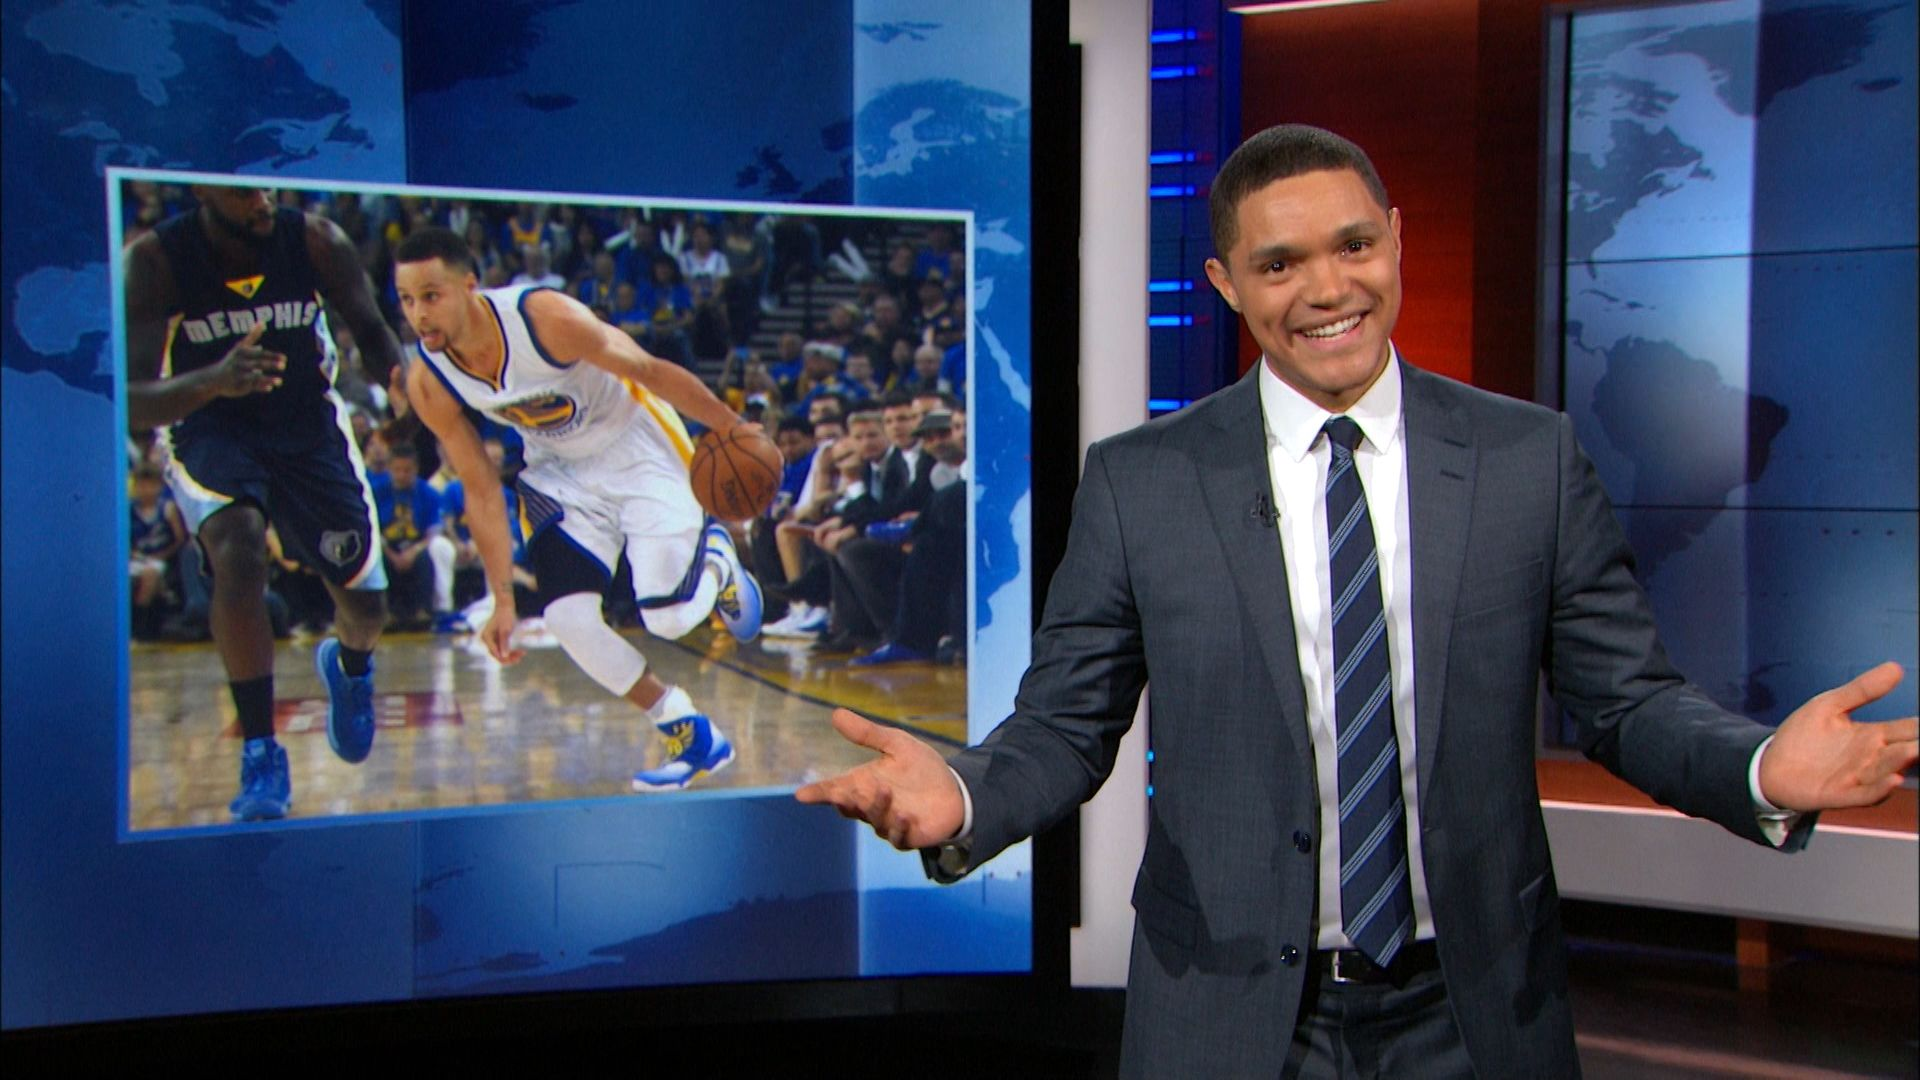 Congrats to the Mamba - The Daily Show with Trevor Noah (Video Clip) | Comedy Central